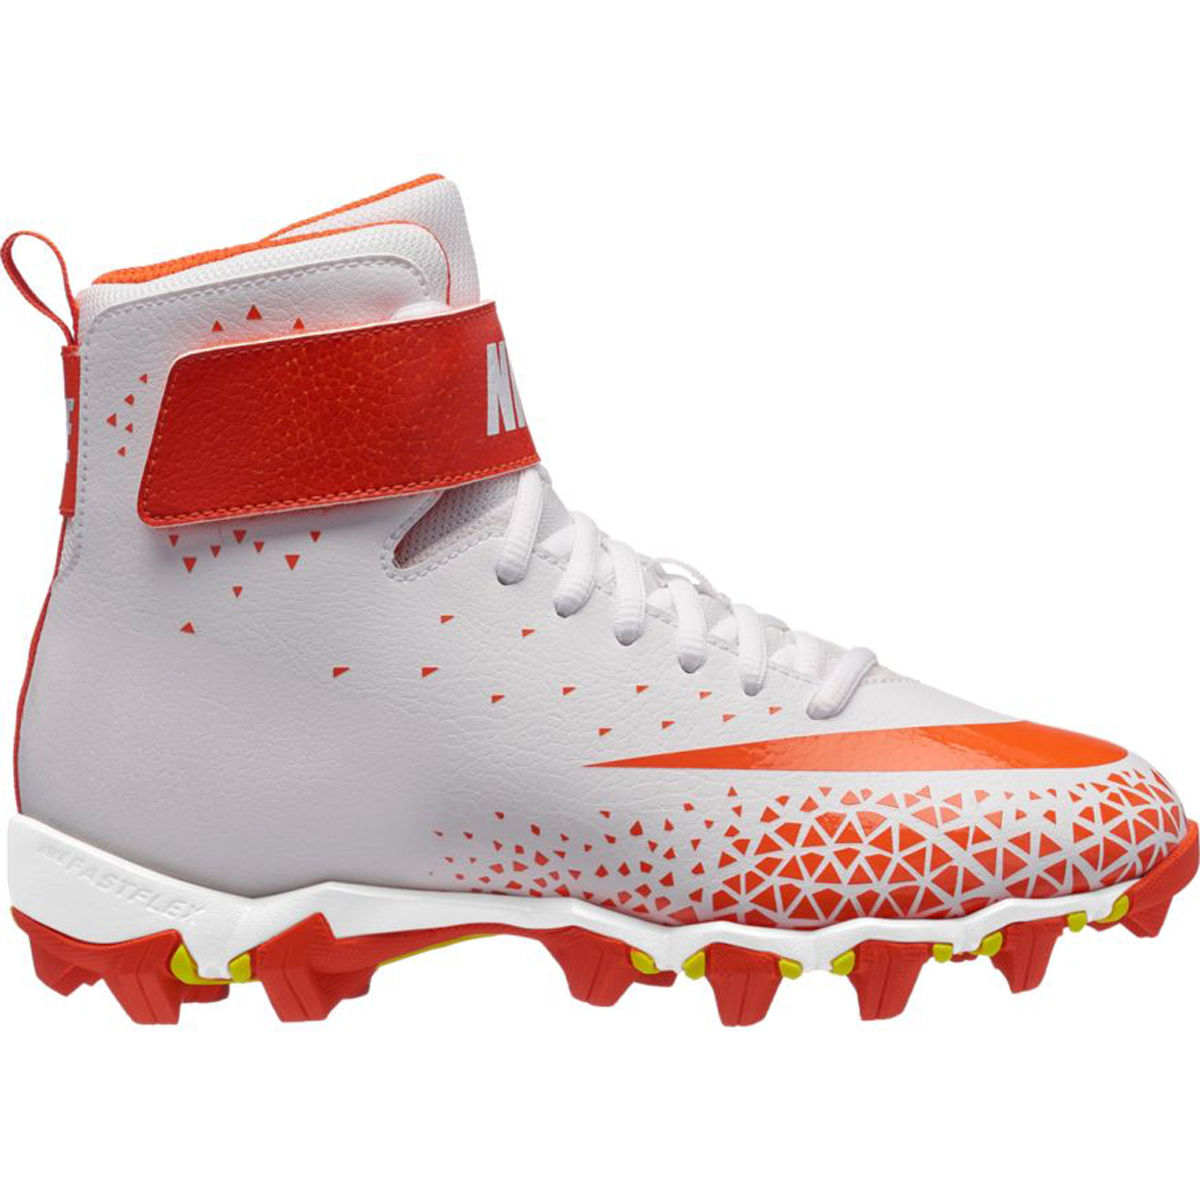 Nike Force Savage Shark Grade School Boys Football Cleat